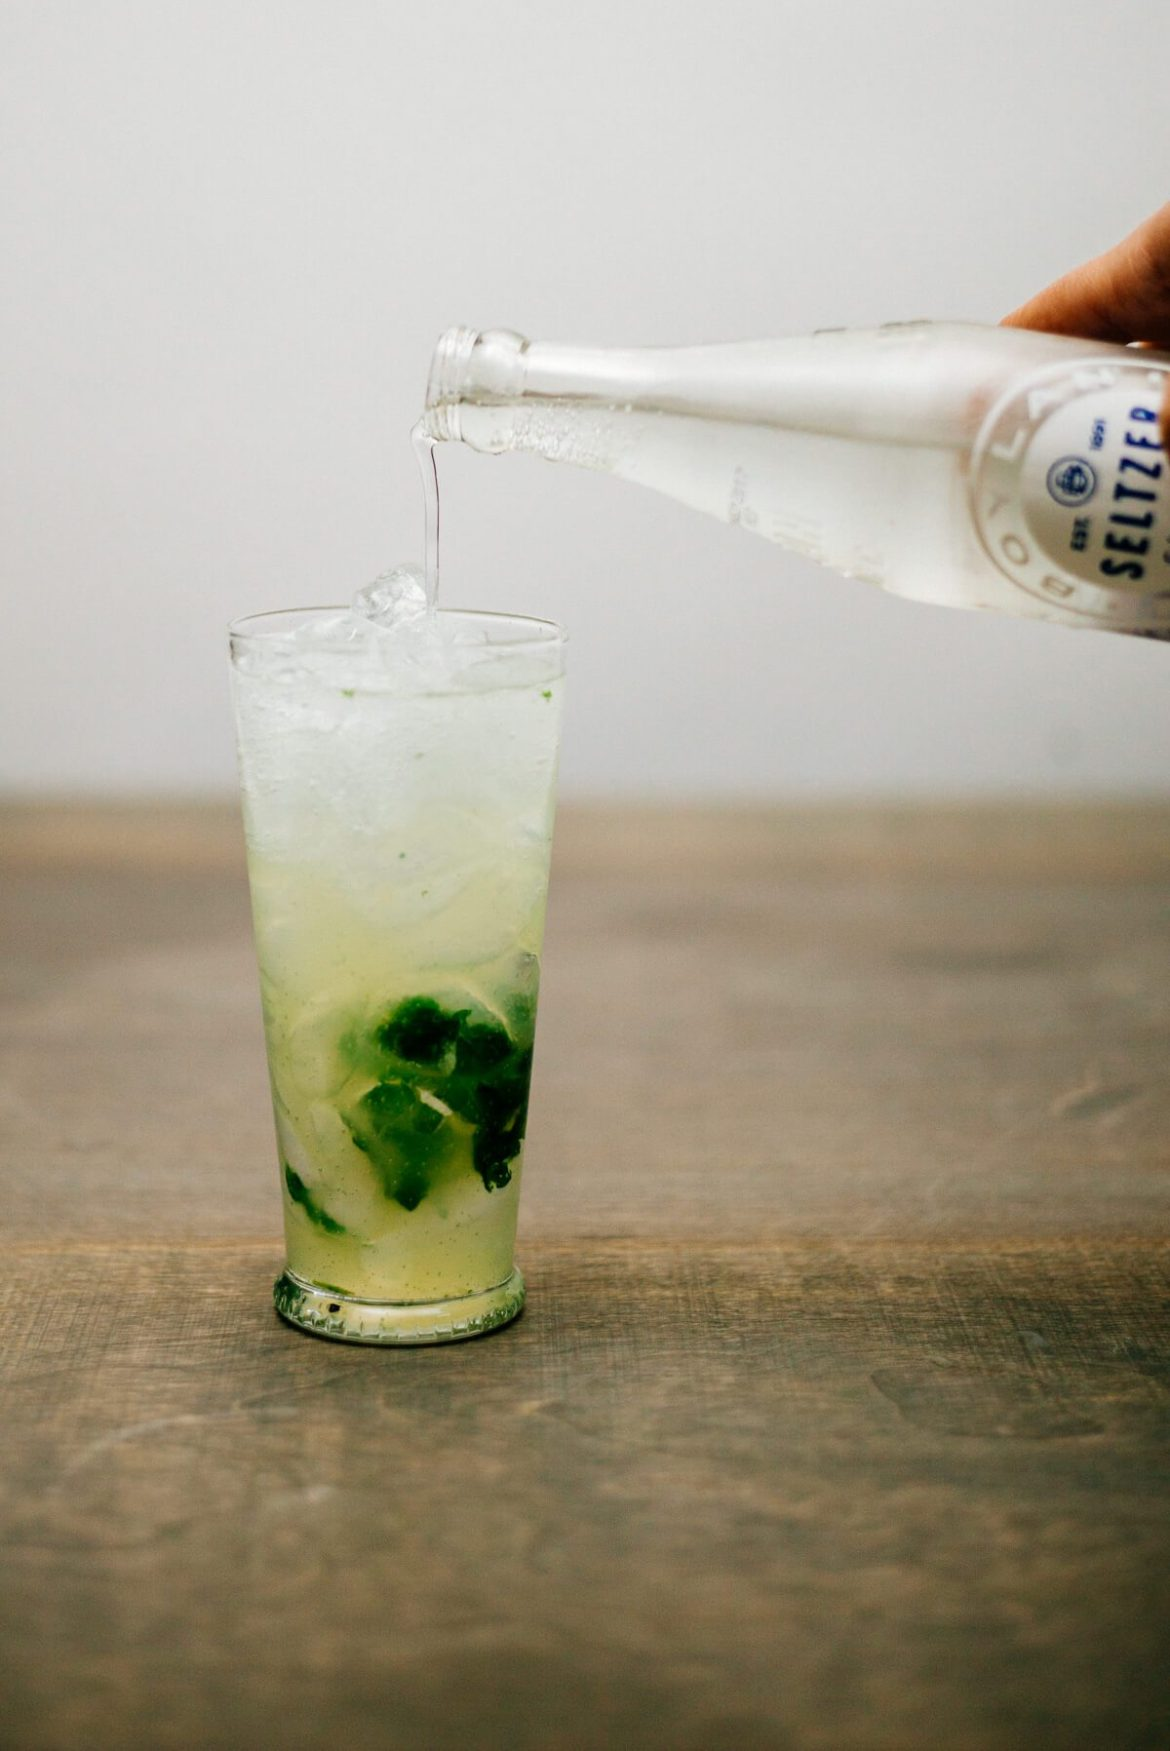 Making a classic mojito with tonic water